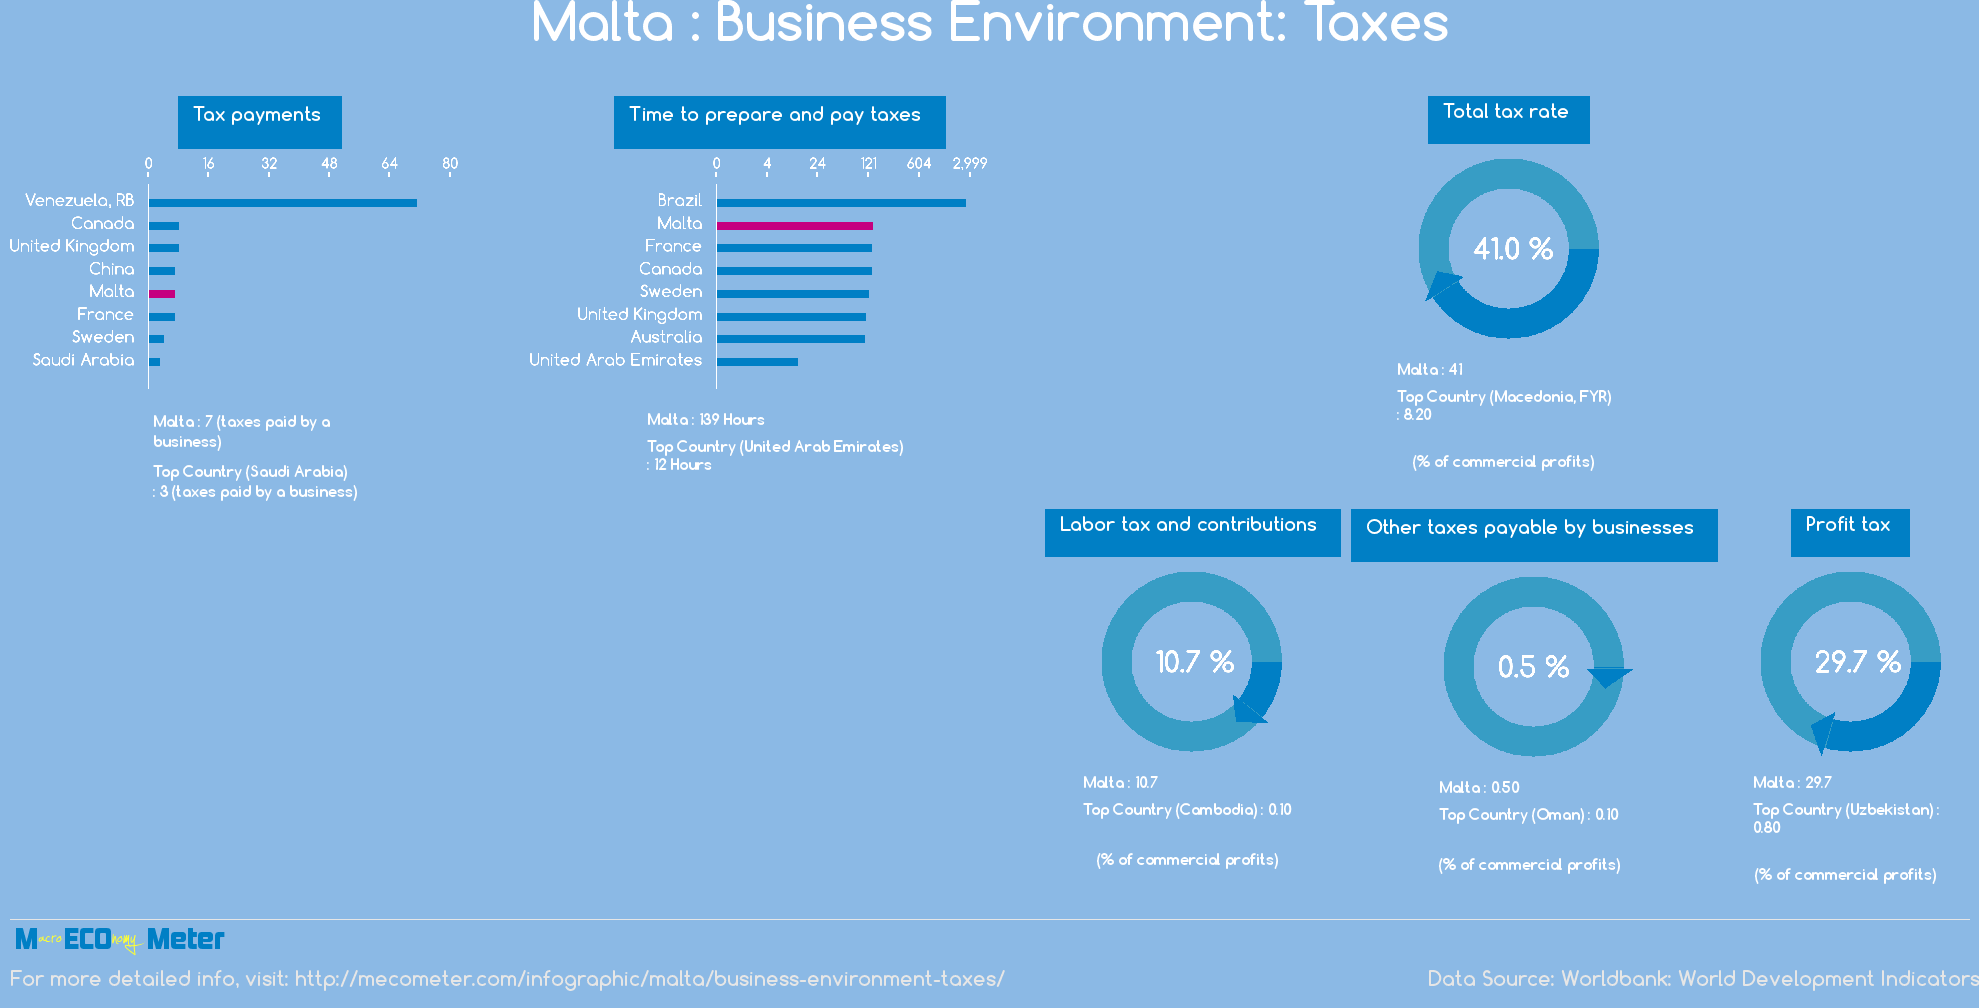 Malta : Business Environment: Taxes